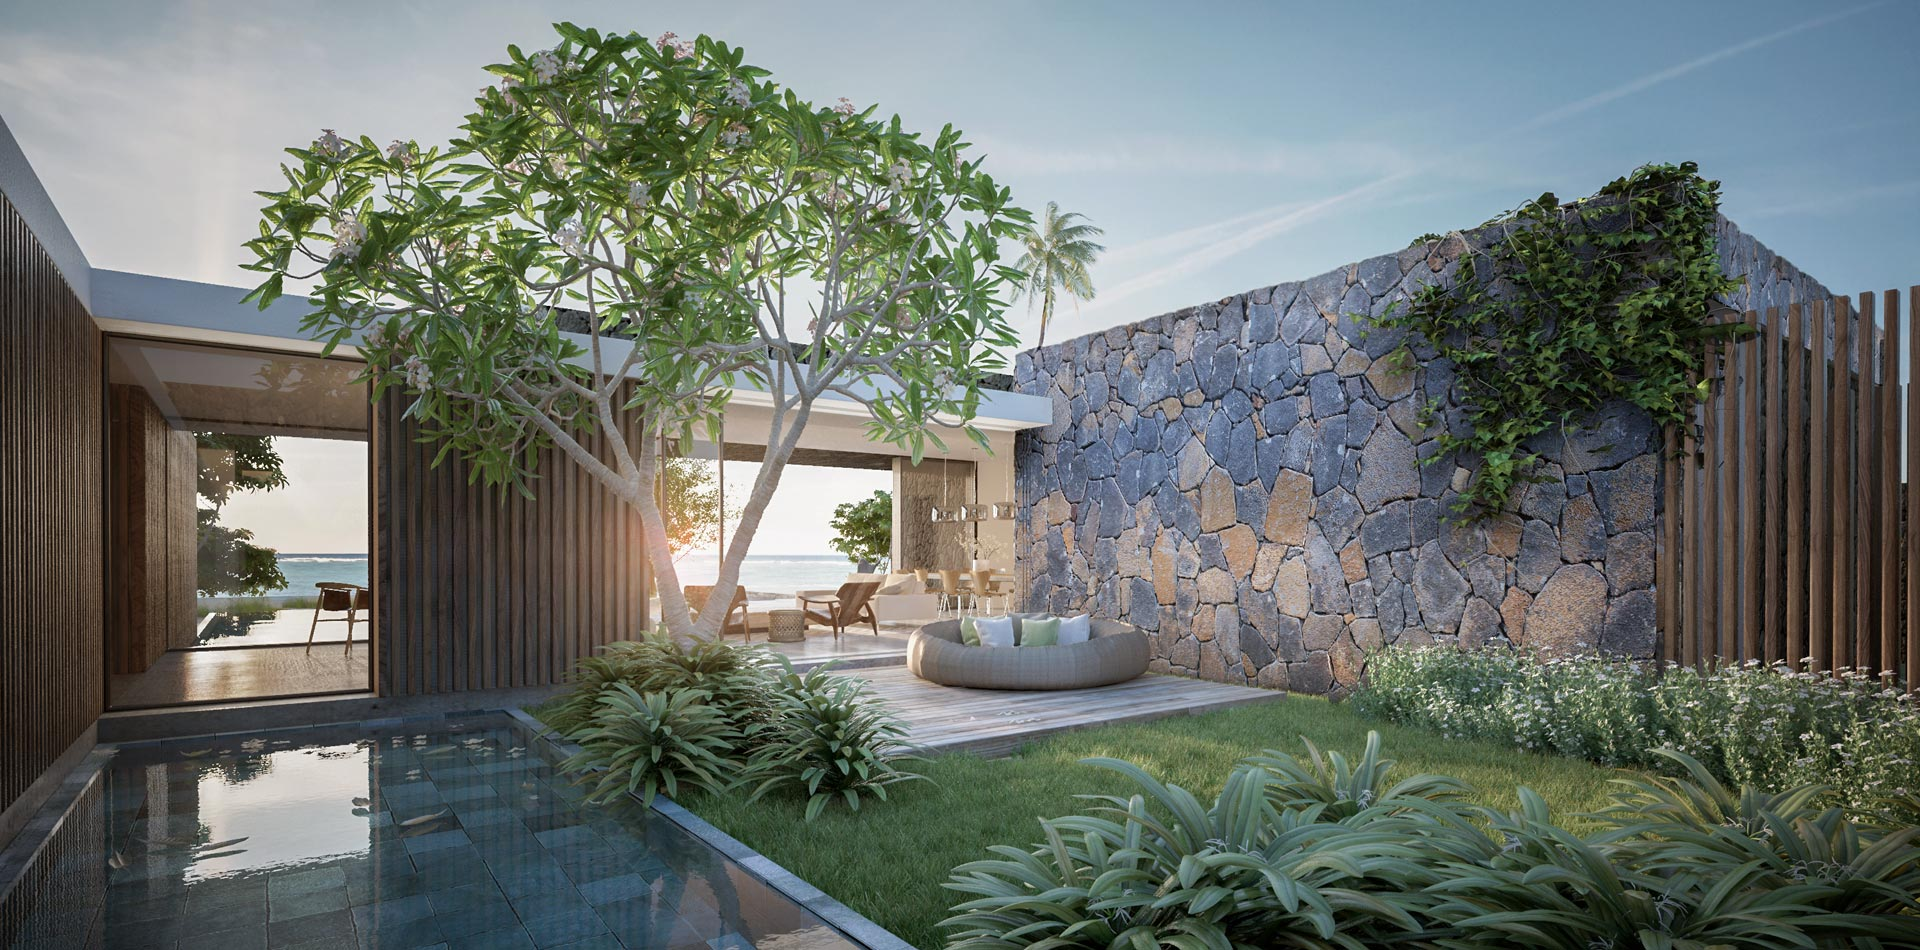 3D Visualisation 3ds max Terri Brown Architecture Interior Design Vray Mauritius East Coast Tropical Luxury Modern Courtyard